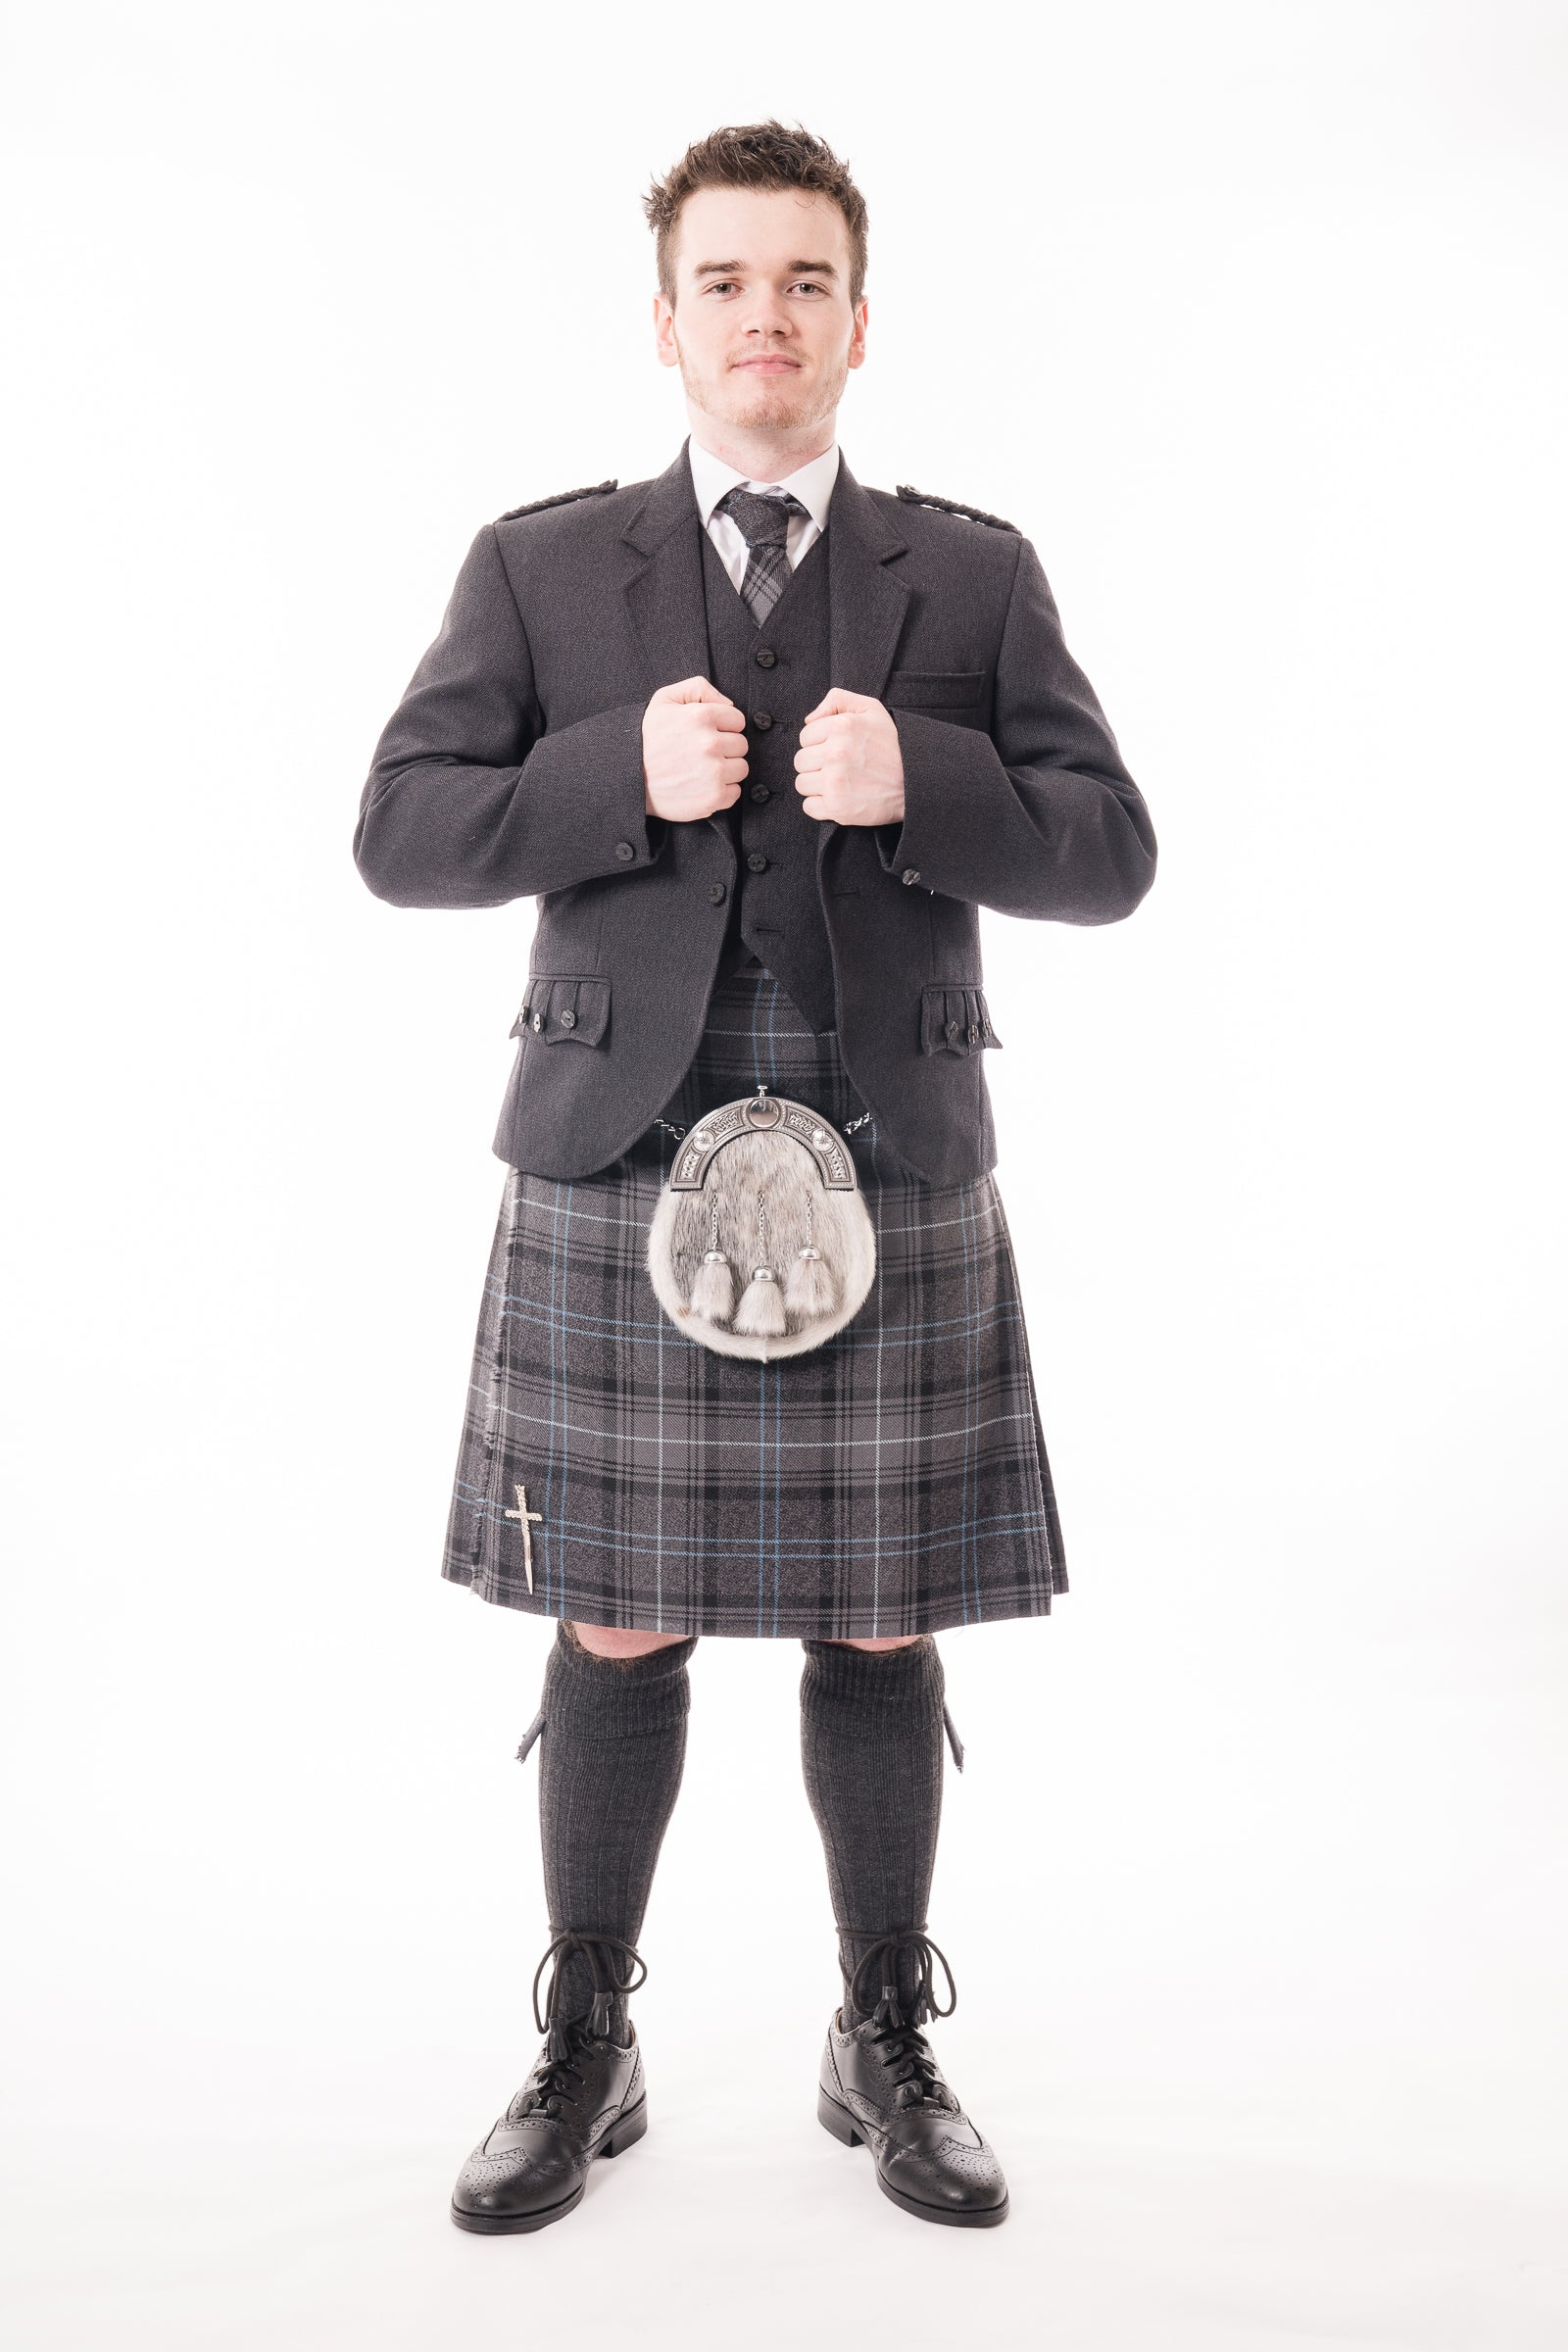 Charcoal crail kilt hire outfit with Highland Granite Blue kilt from Anderson Kilts Dumfries